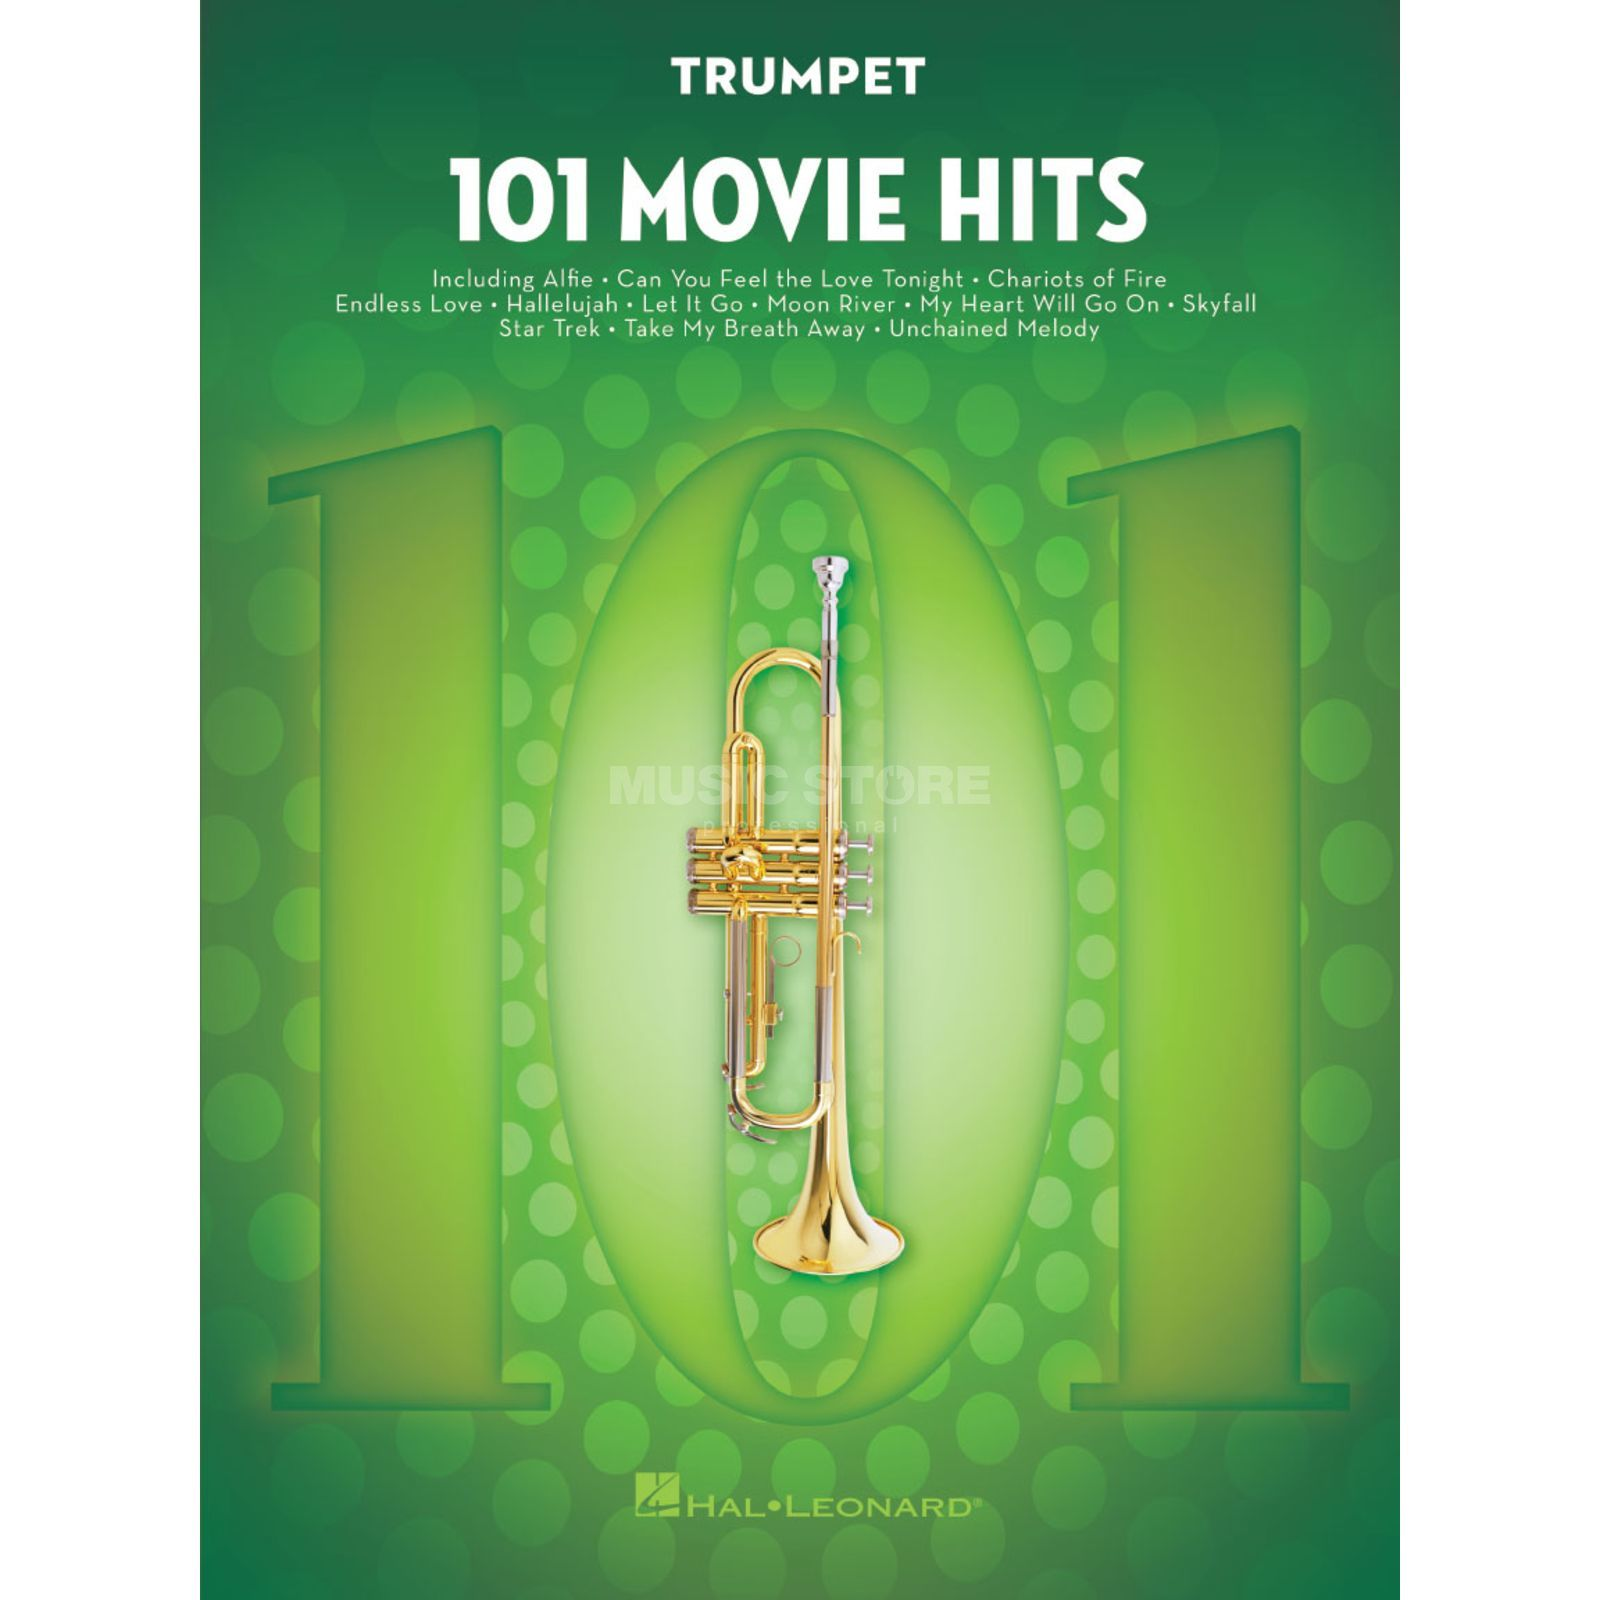 Hal Leonard 101 Movie Hits For Trumpet Image du produit